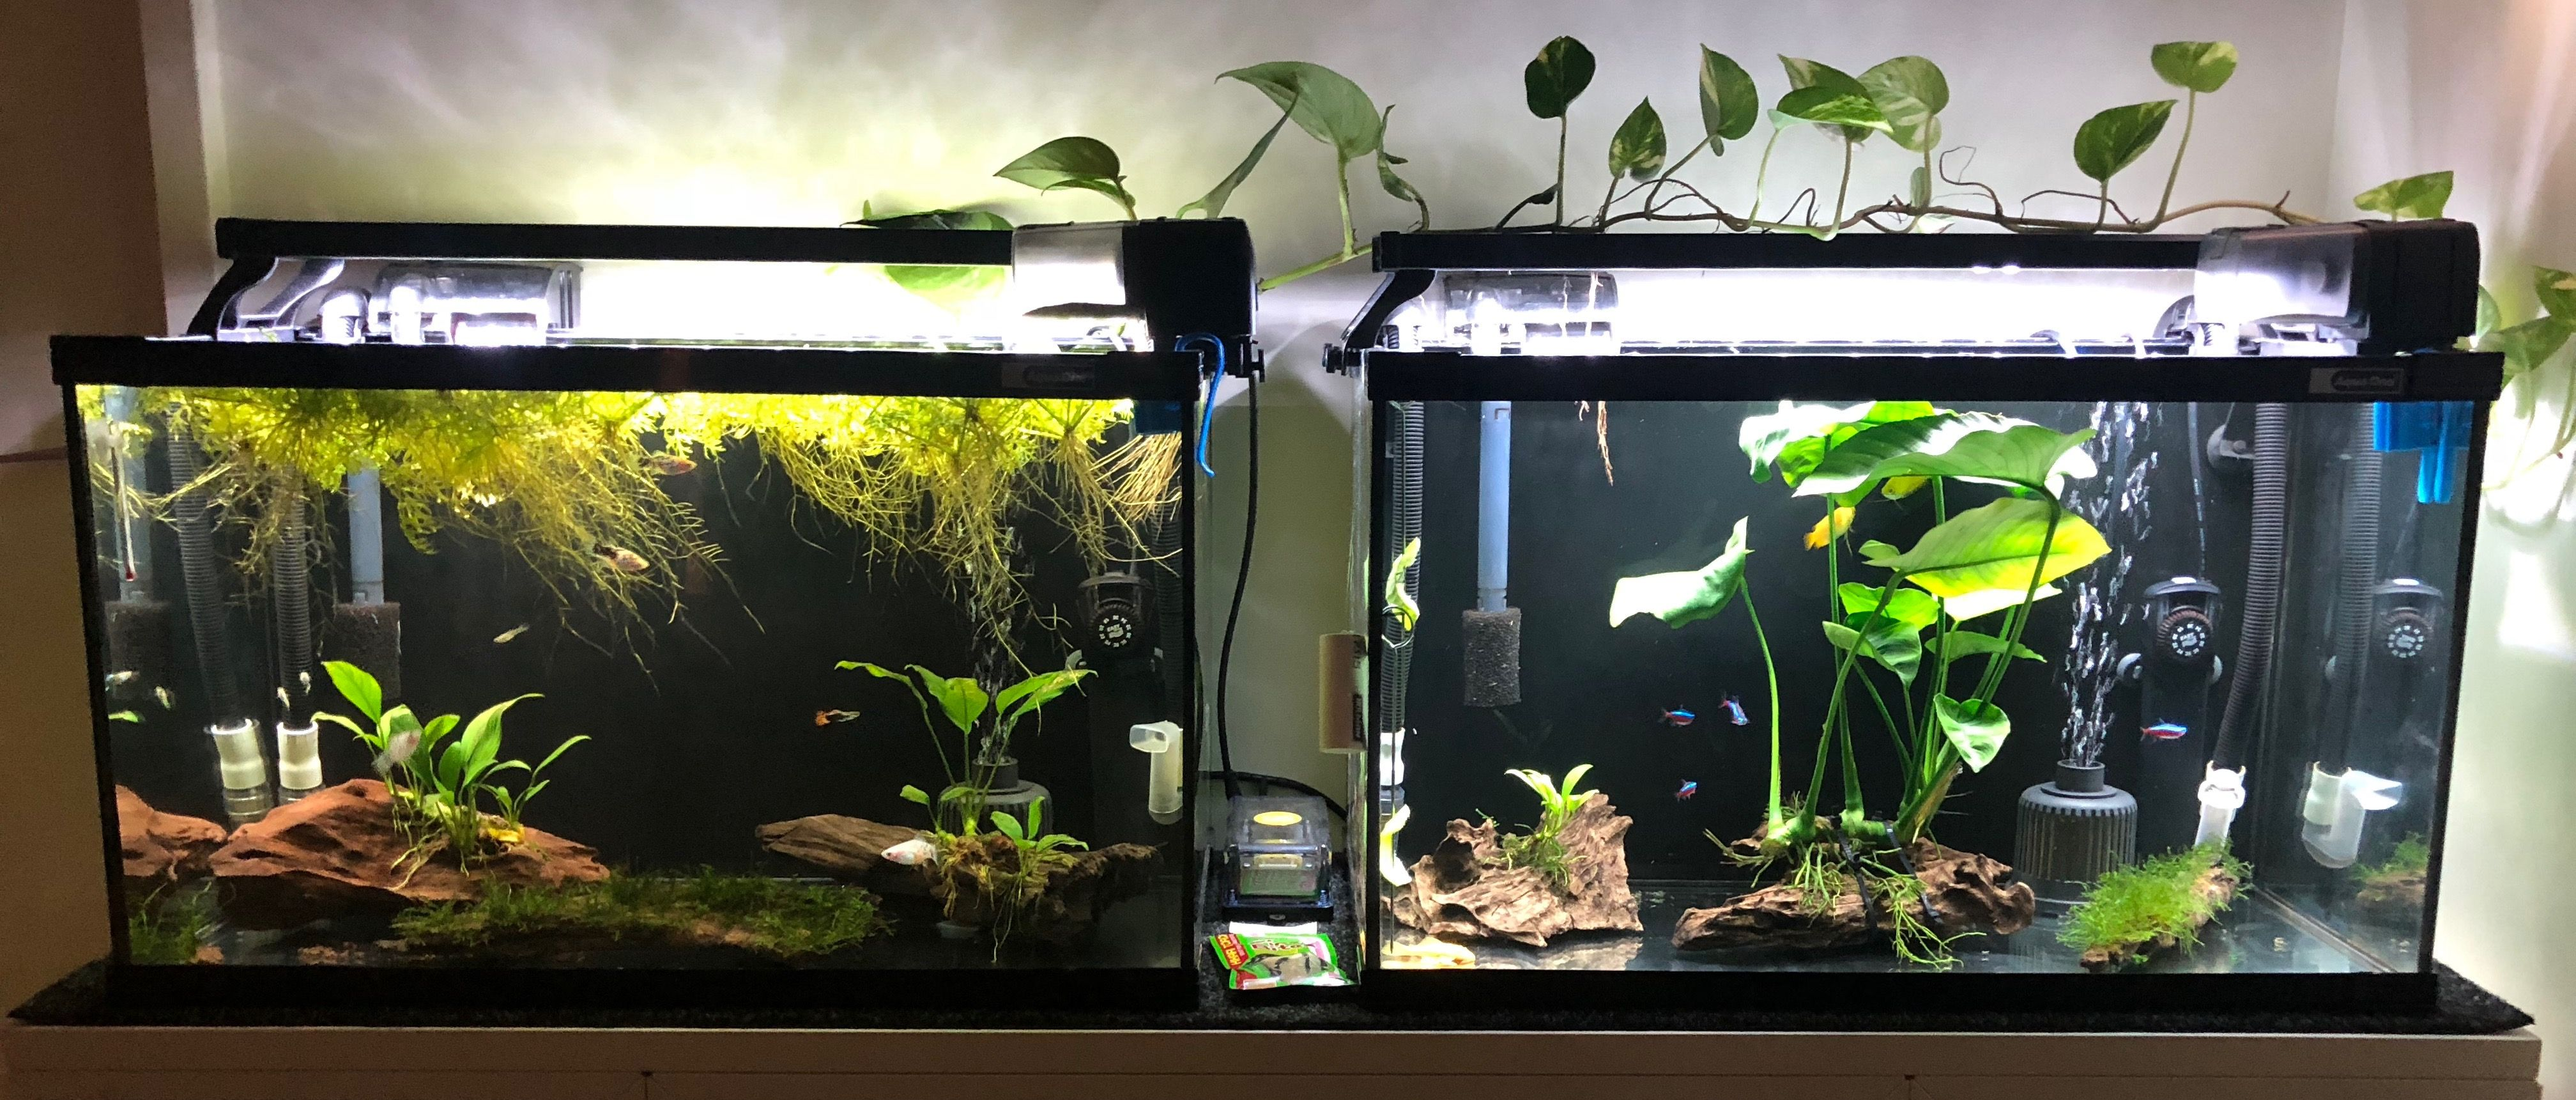 Pin by Trent R. on Aquariums and Aquascaping | Aquascape ...